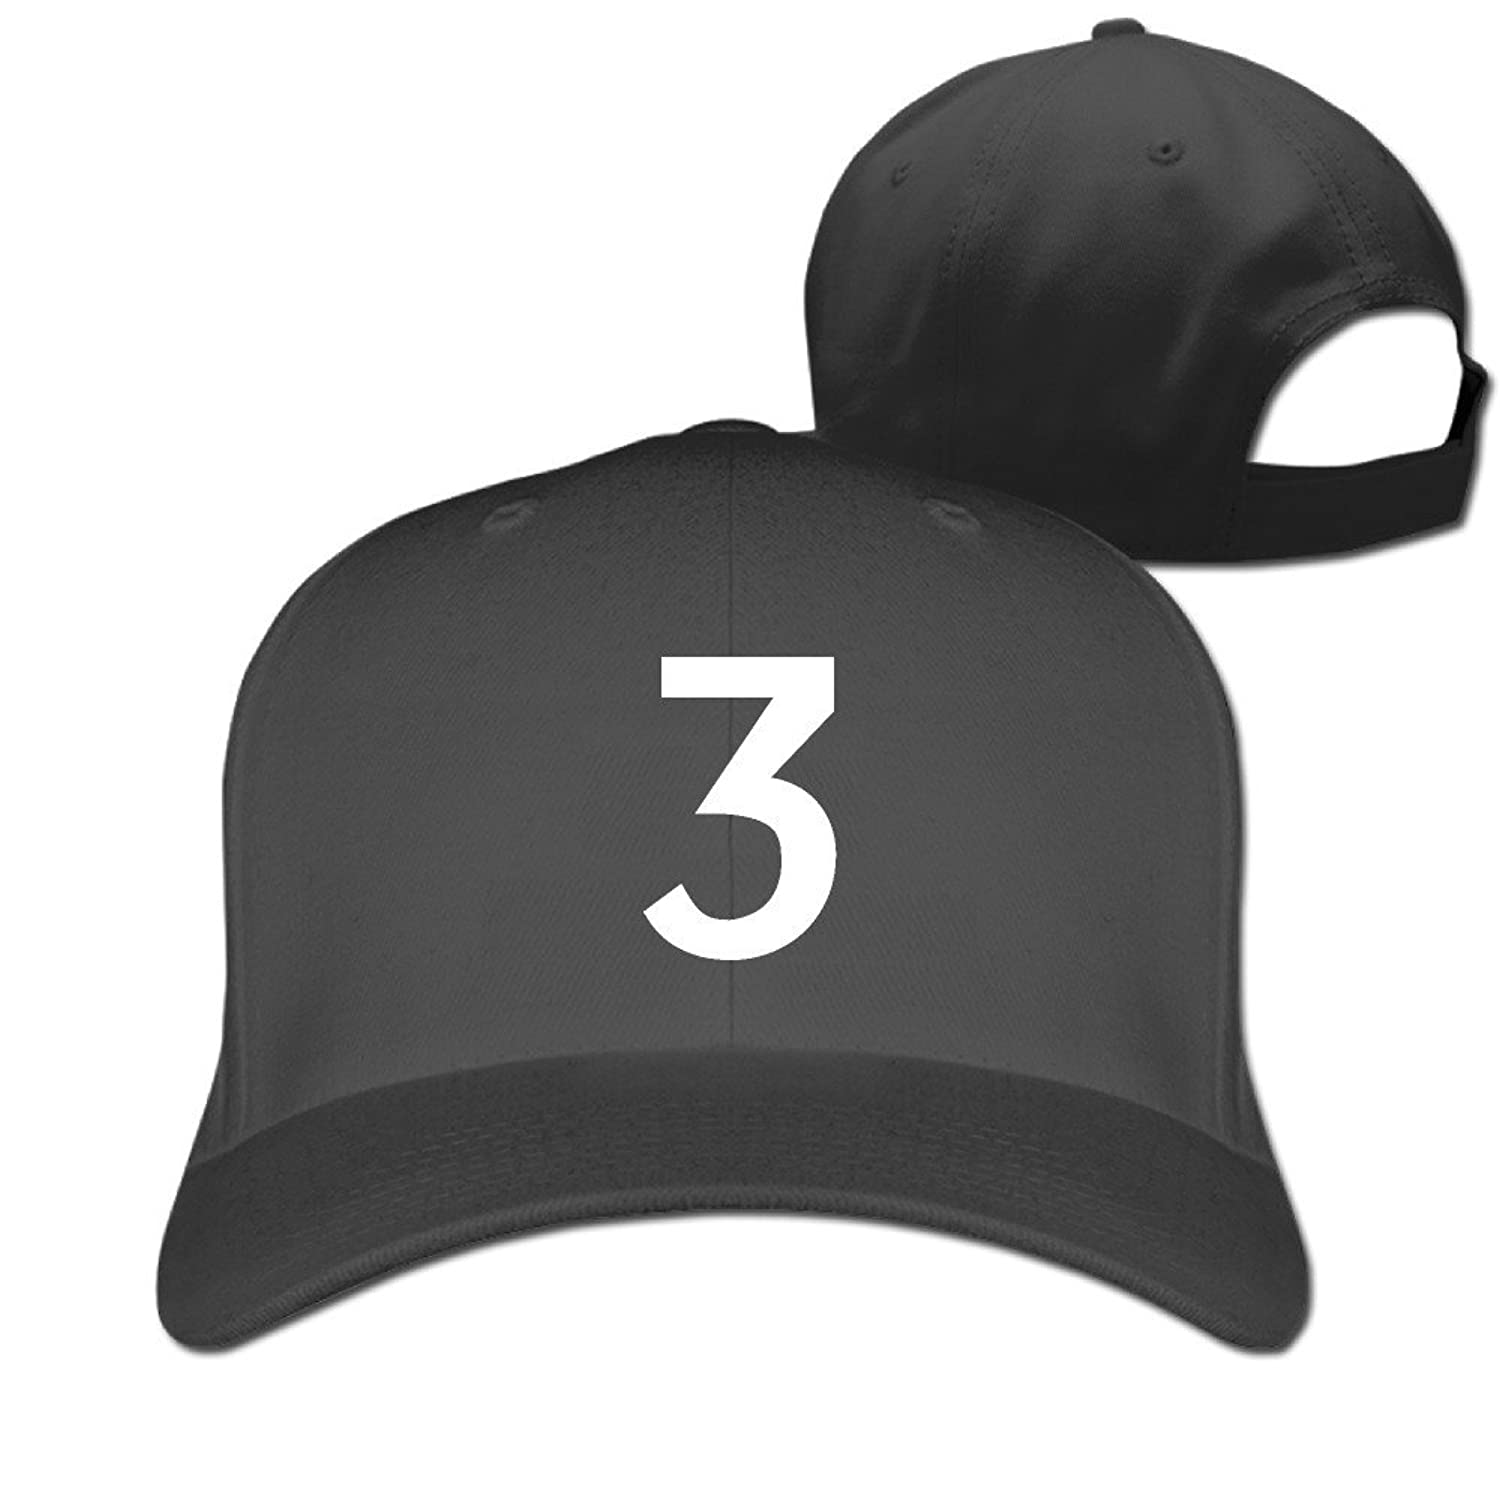 Coloring book chance the rapper hat - Amazon Com Unisex Chance The Rapper Number 3 Coloring Book Adjustable Hat Peaked Hat 6310419030043 Books